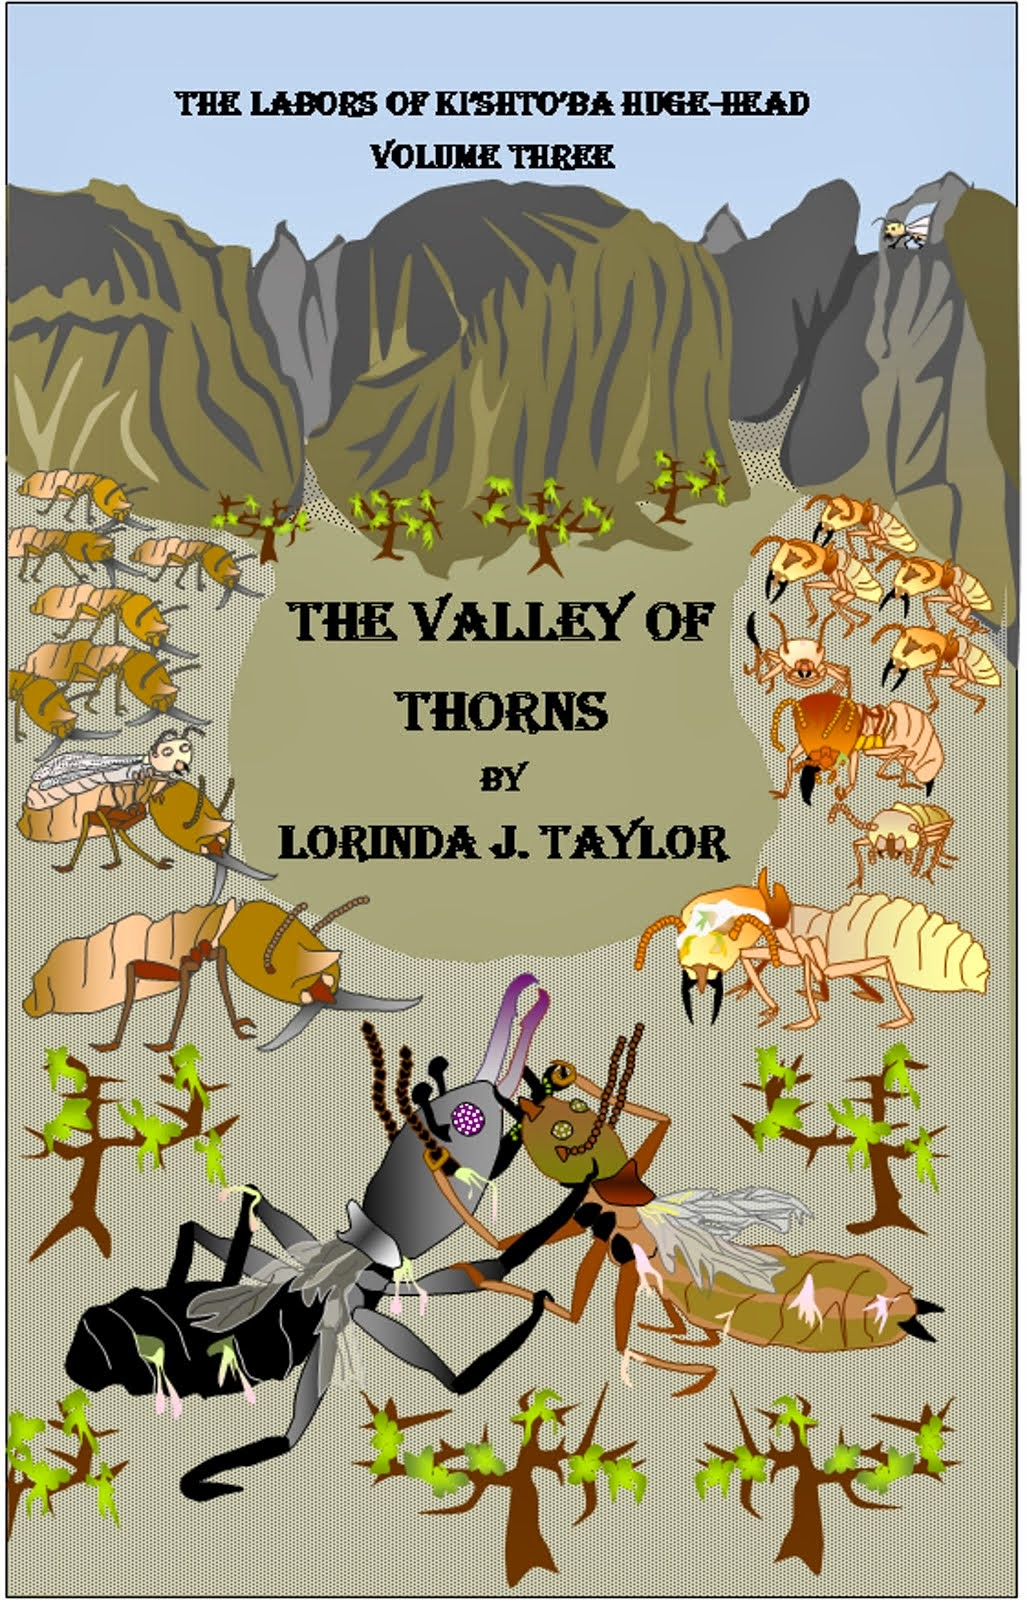 THE VALLEY OF THORNS, v.3 of THE LABORS OF KI'SHTO'BA HUGE-HEAD